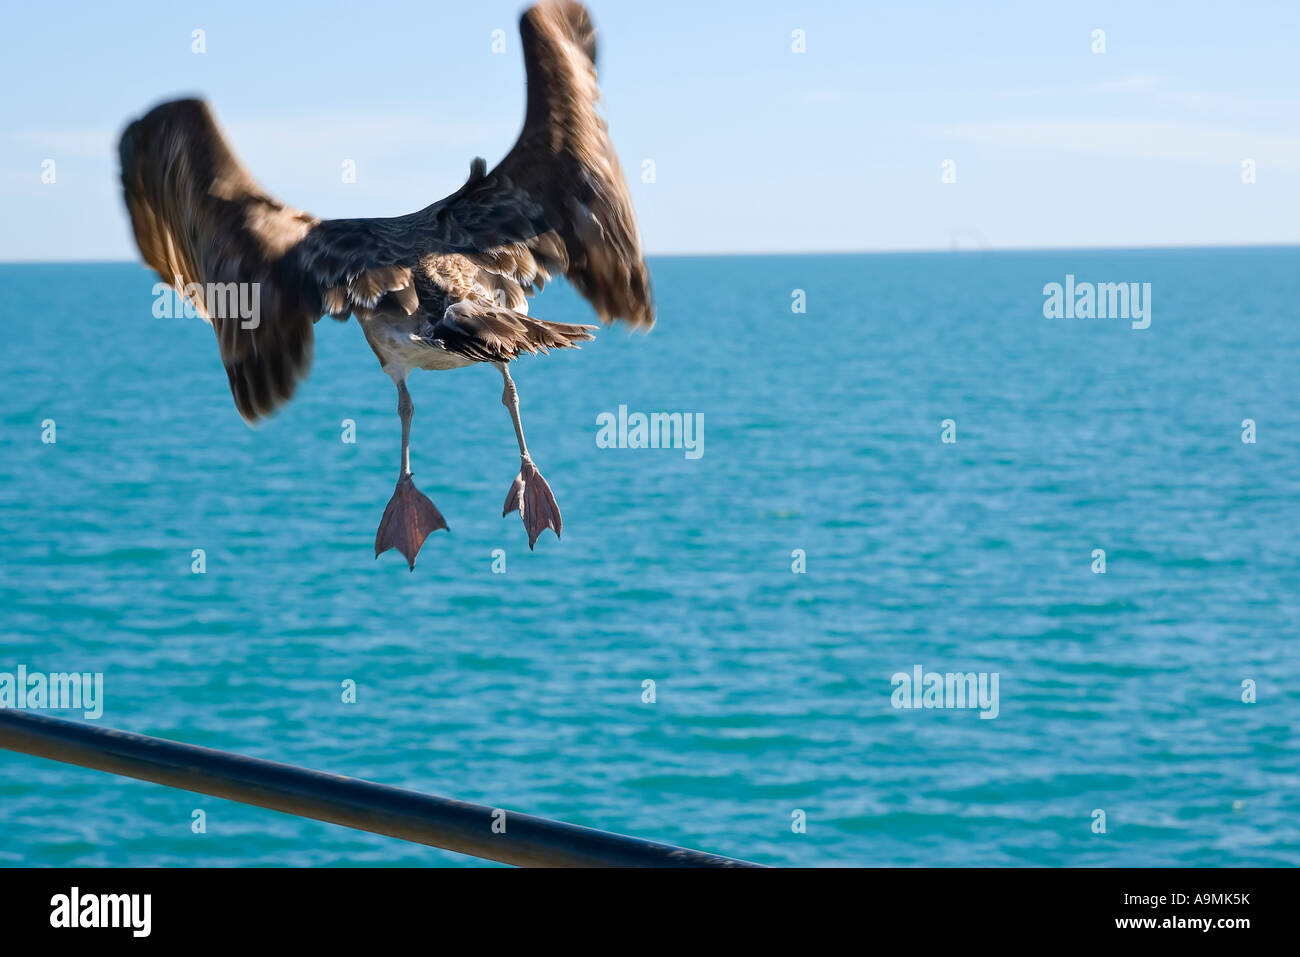 its time to go a large petrel sea bird takes of from a handrail to head out over the ocean - Stock Image